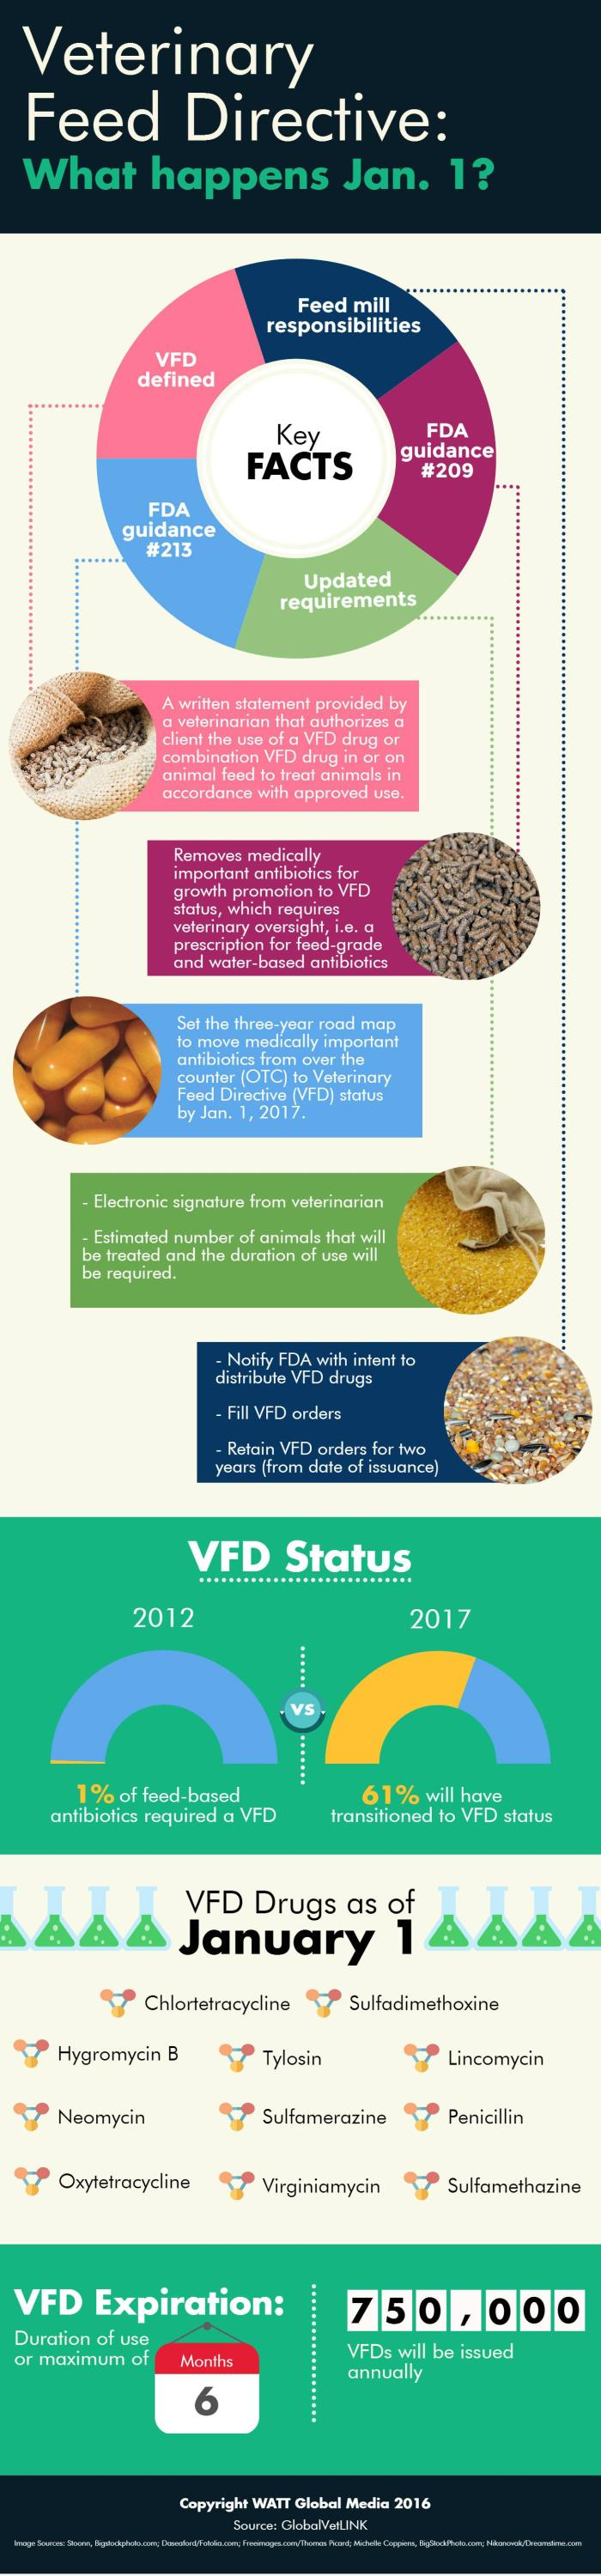 veterinary-feed-directive-what-happens-jan-1.v2.INFOGRAPHIC